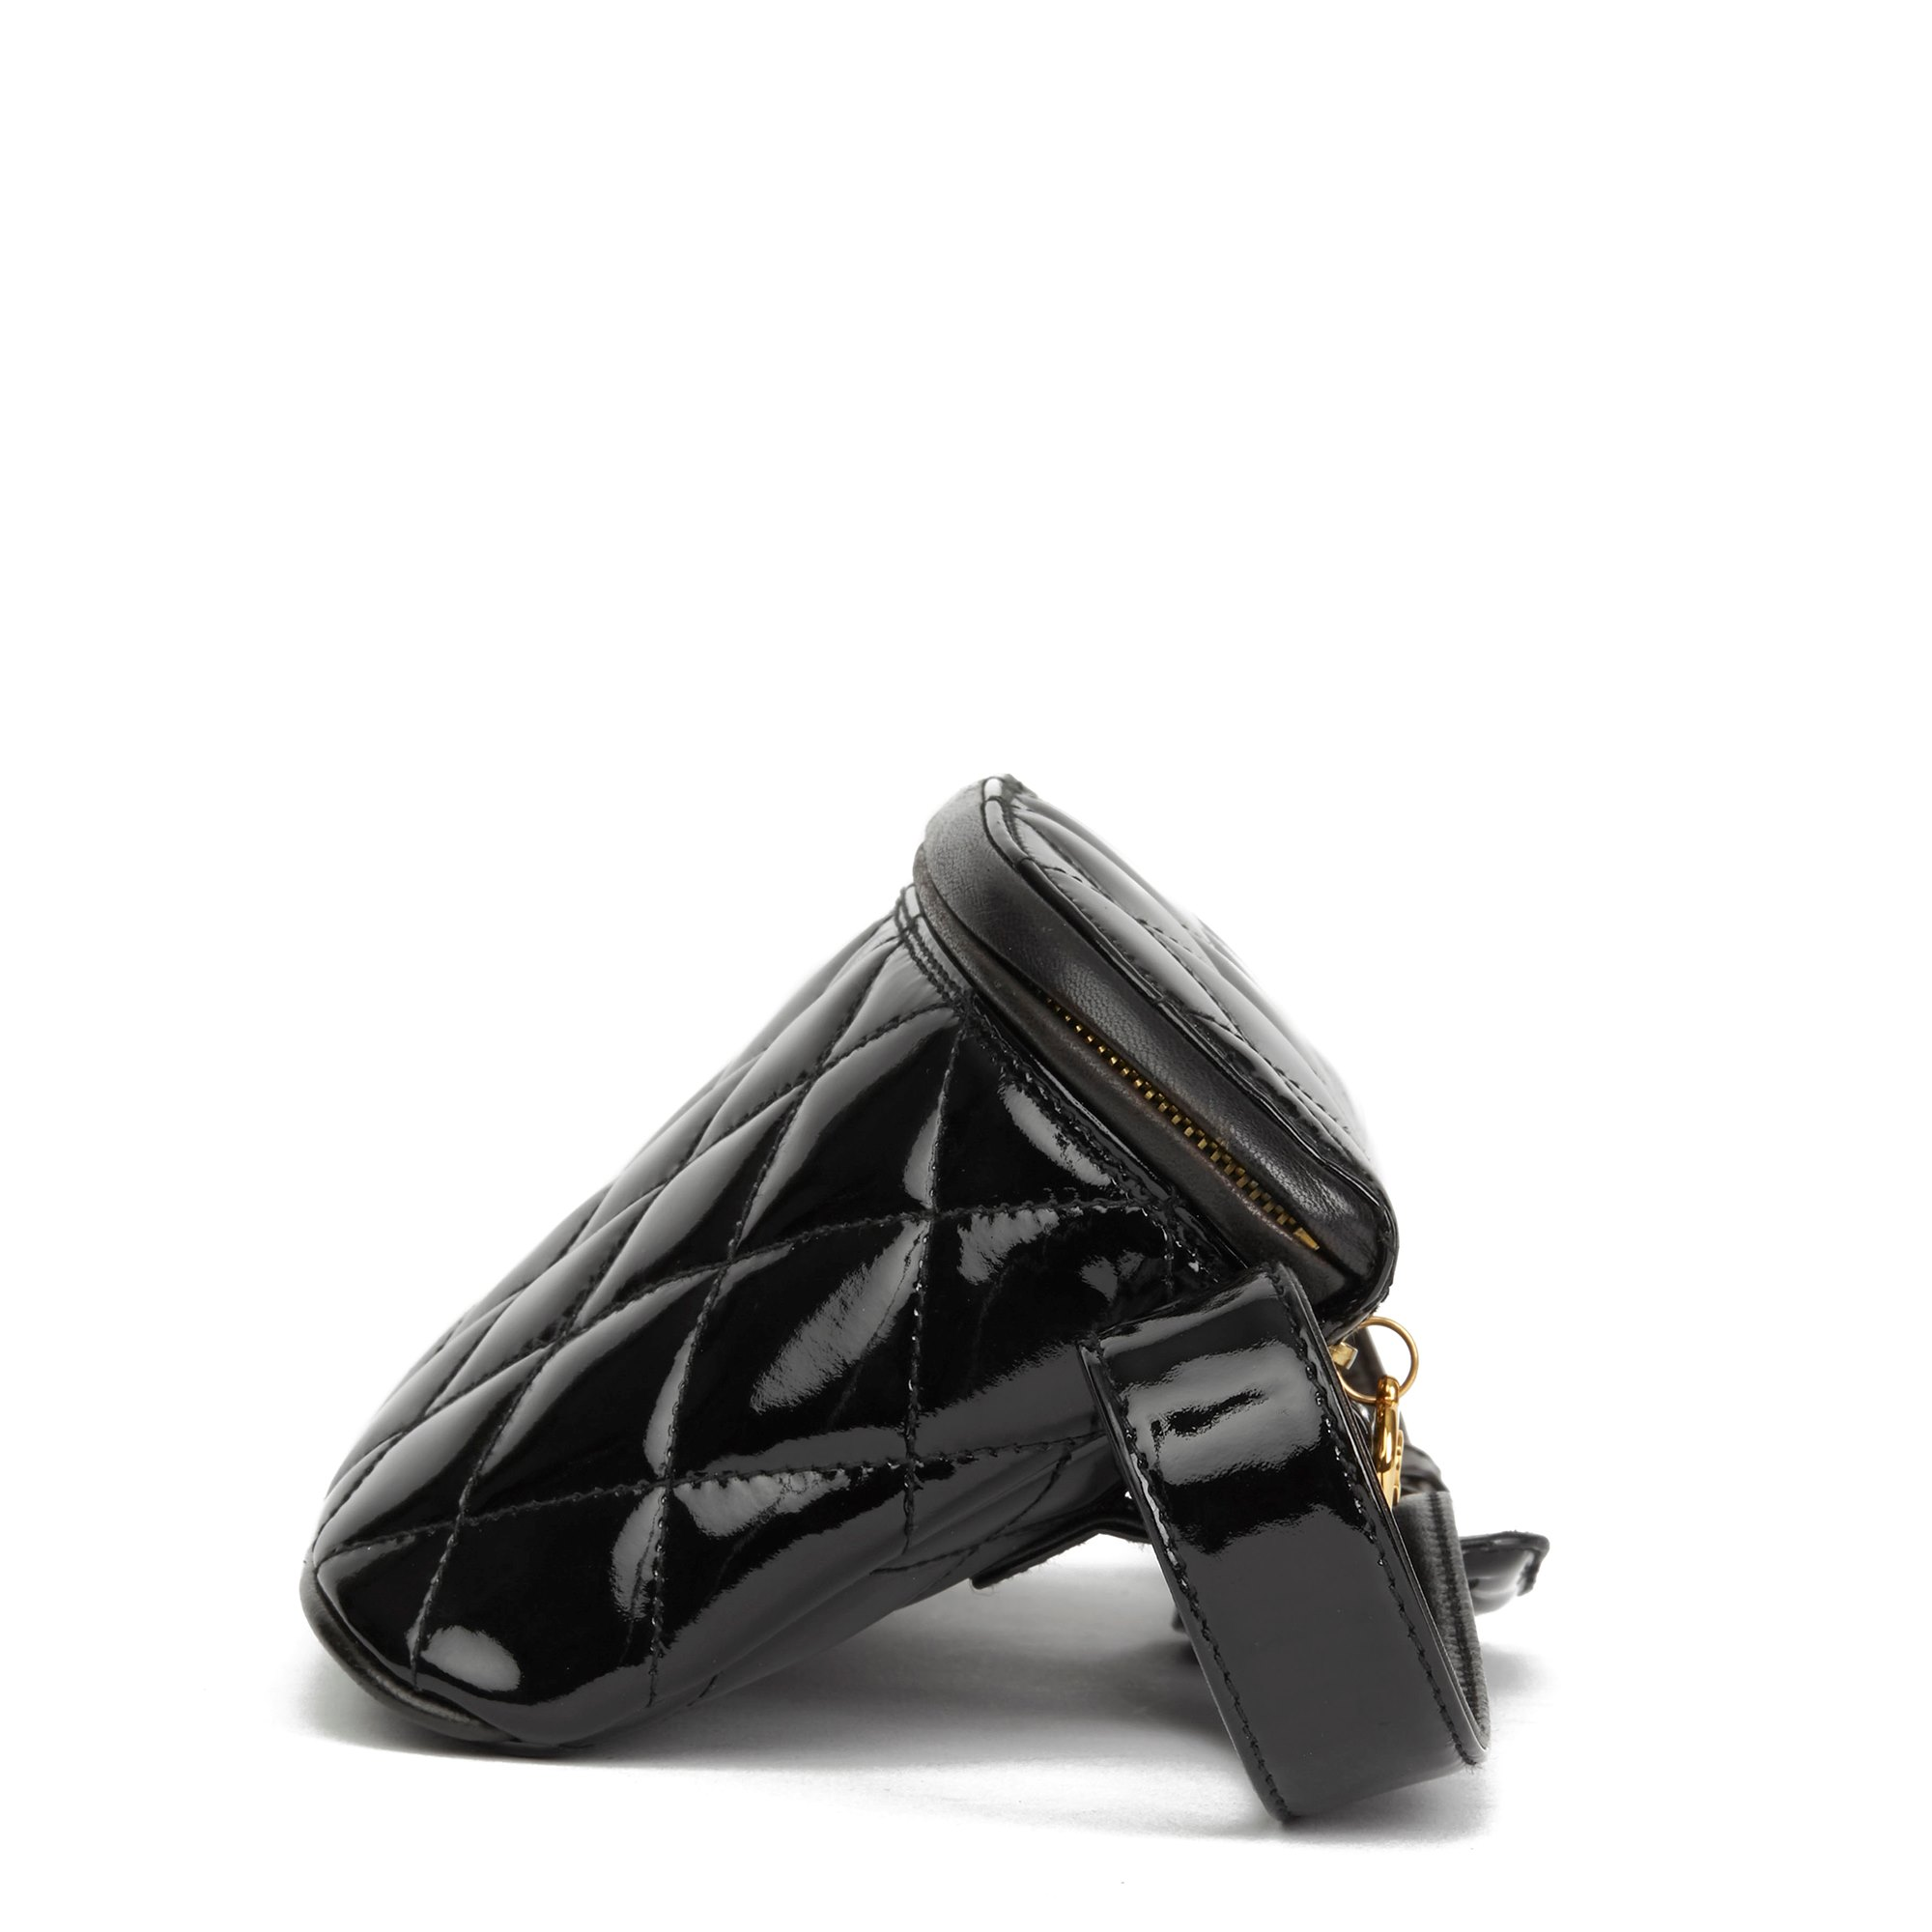 Chanel Black Quilted Patent Leather Vintage Timeless Belt Bag